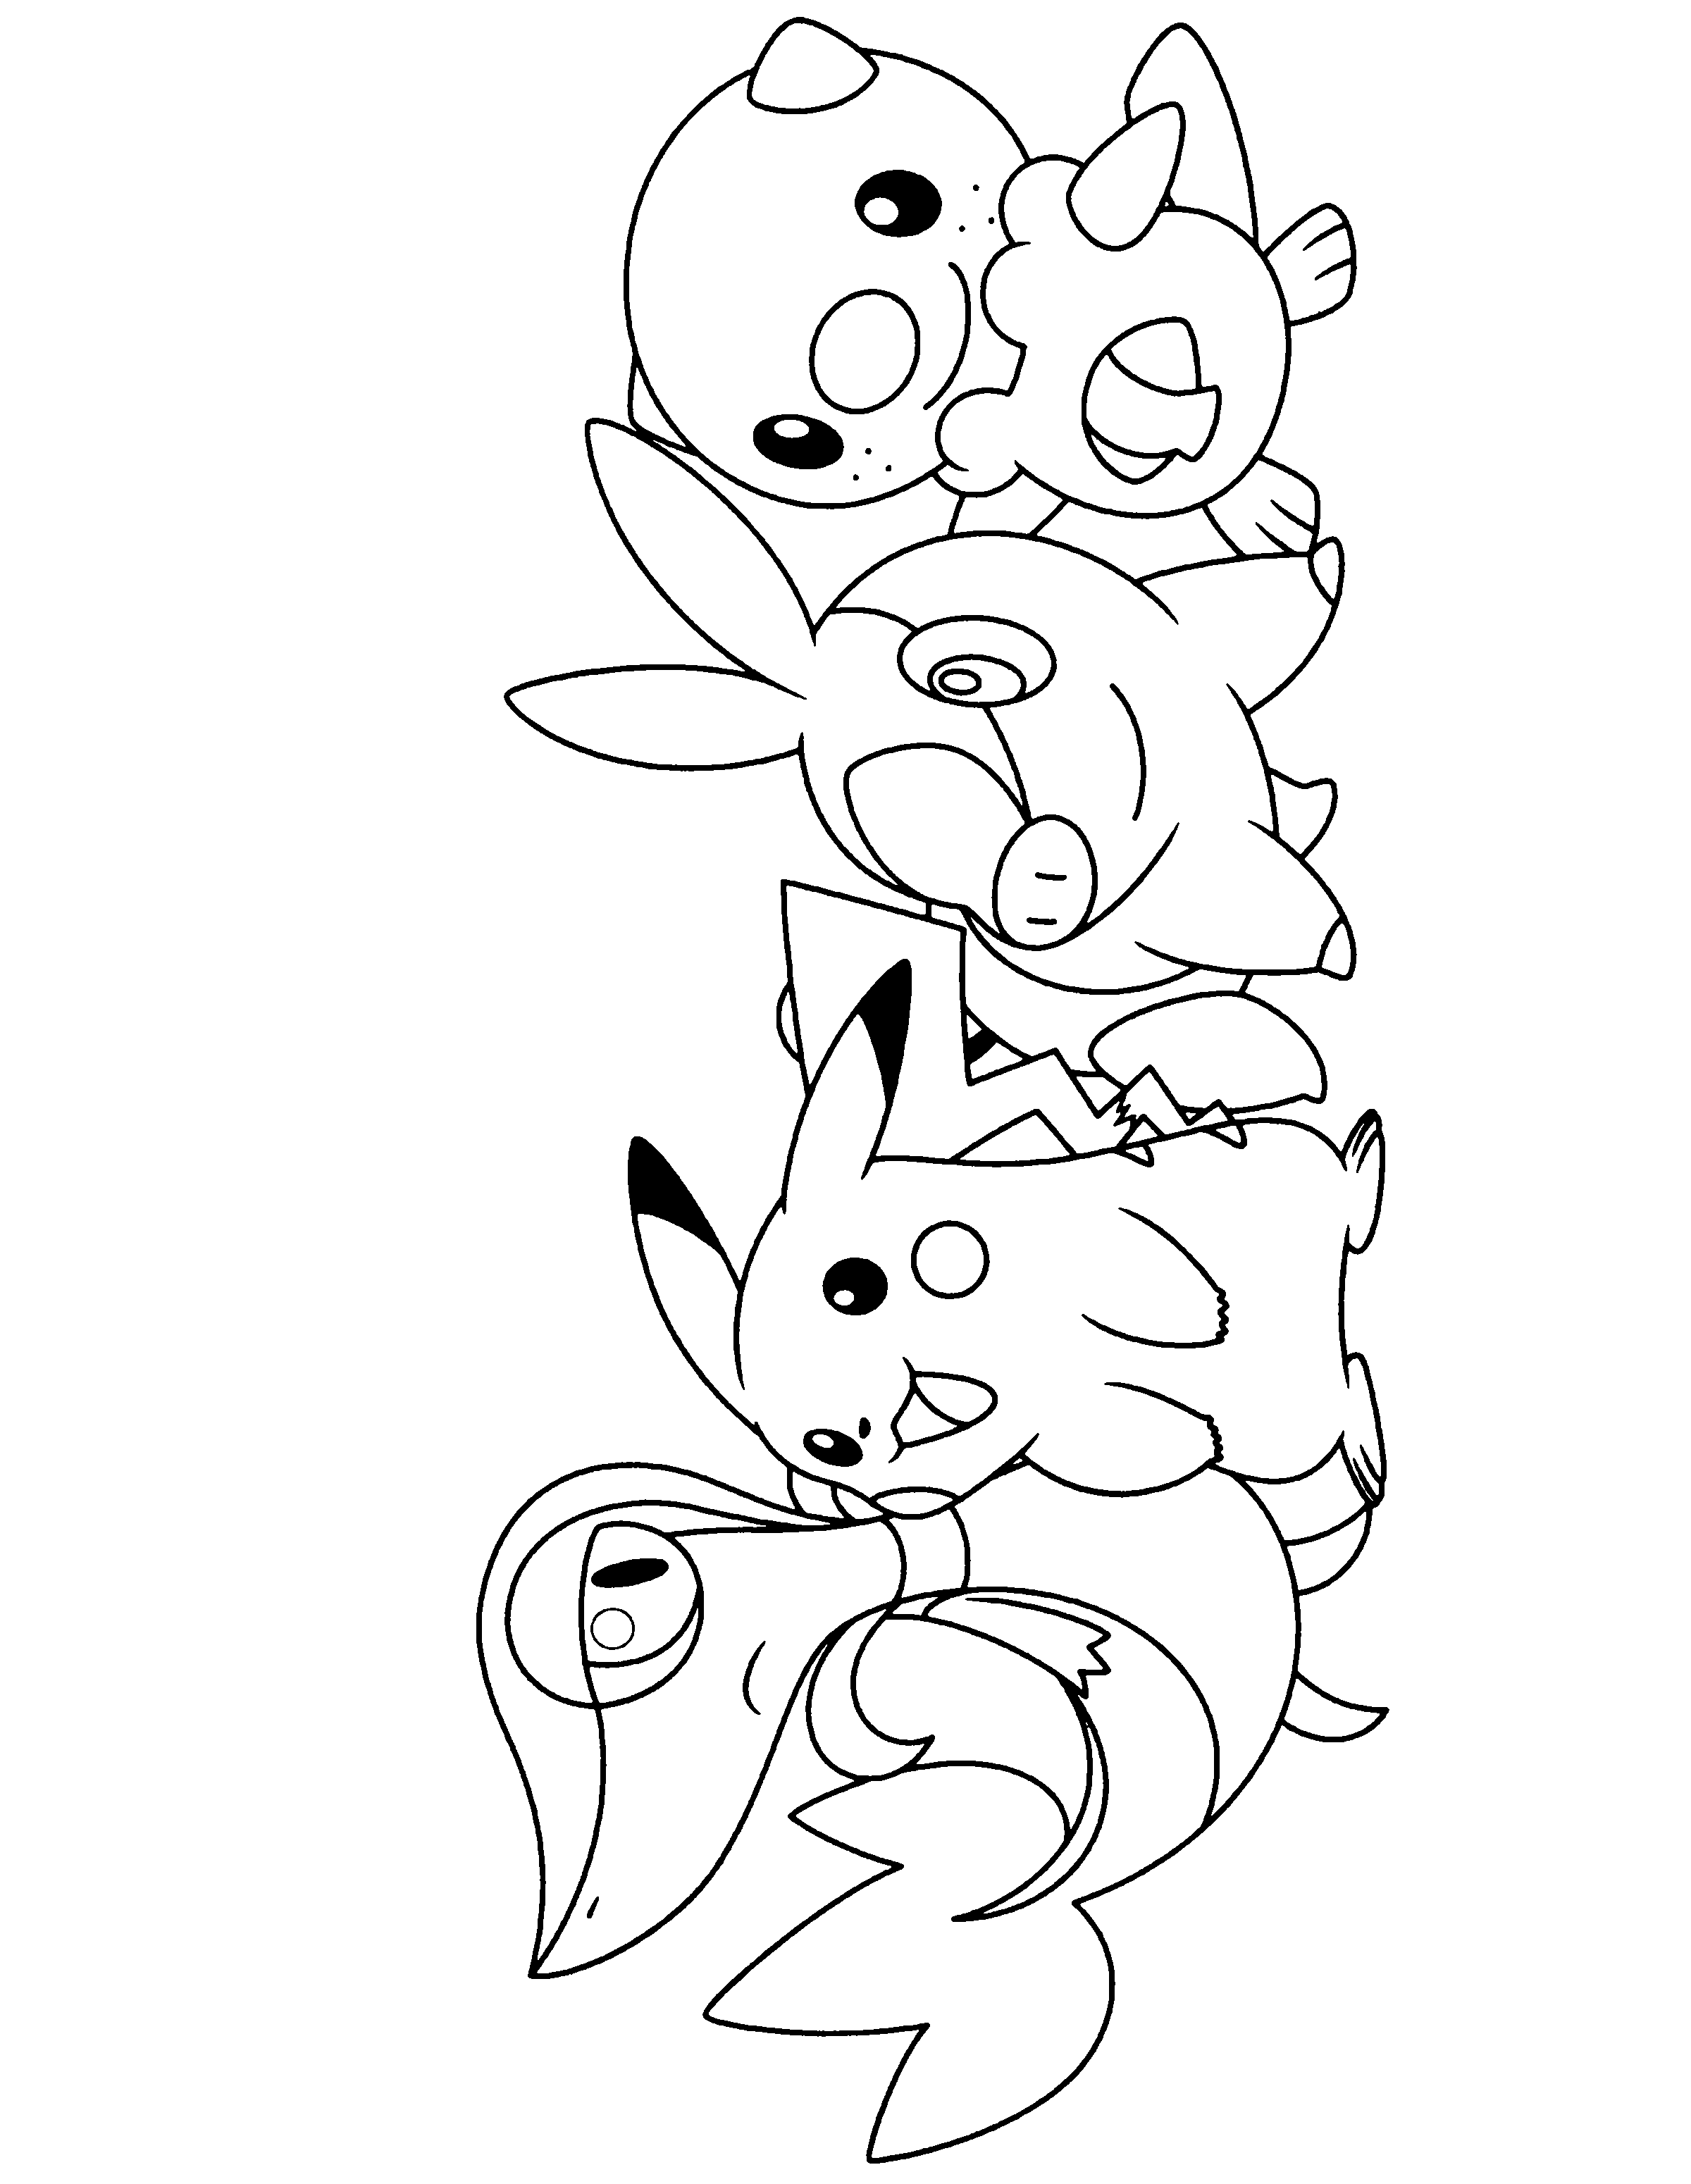 pokemon coloring pages google images - photo#32